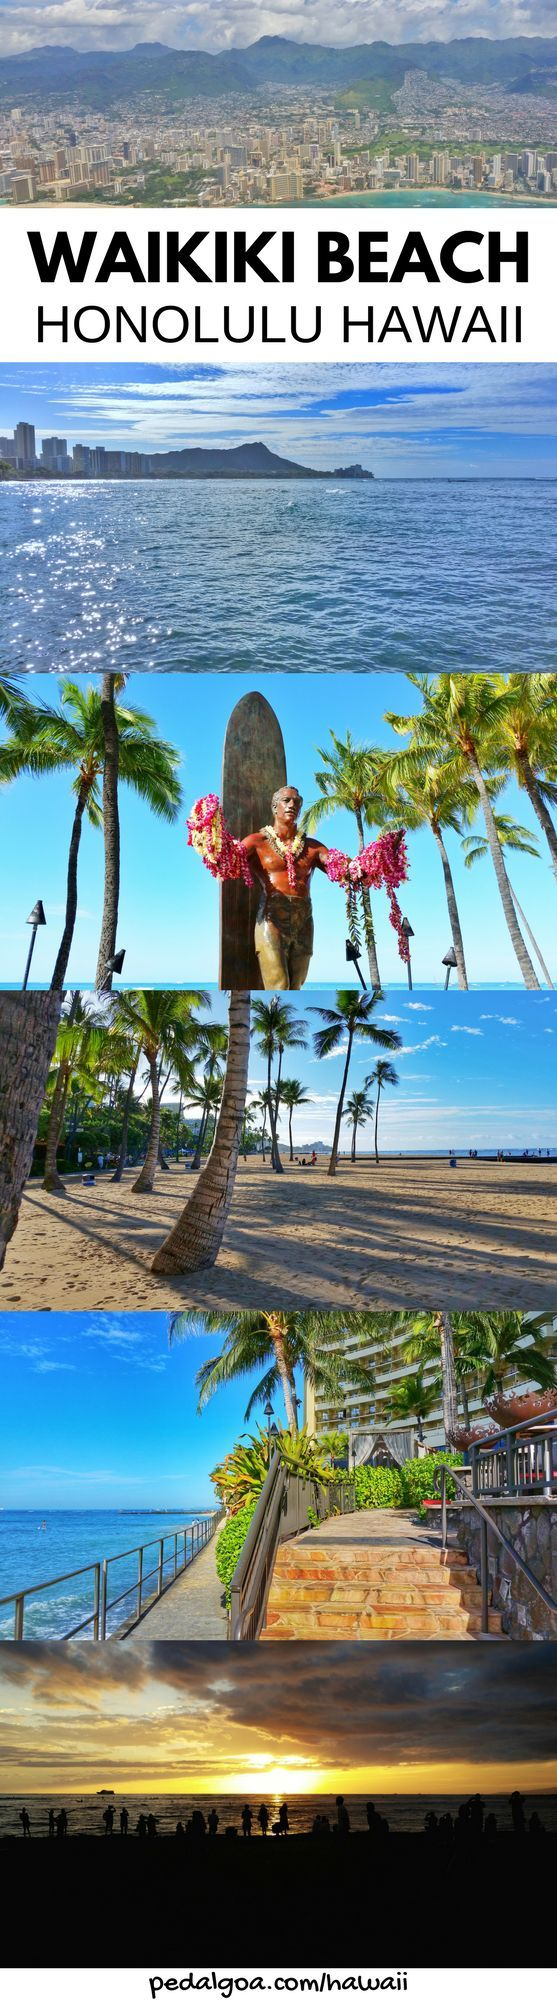 Waikiki Beach, Honolulu, Hawaii. Things to do in Waikiki for free. Beaches, snorkeling spots in Oahu Hawaii. For US beaches in Hawaii, activities on Waikiki Beach! Best Oahu beaches give things to do in Oahu near hiking trails, food, shopping, fun for kids, families. USA travel destinations, bucket list world adventures when on a budget with Hawaii vacation ideas! Add to itinerary in Honolulu! Add snorkeling gear to Hawaii packing list, what to wear in Hawaii... #hawaii #oahu #waikiki